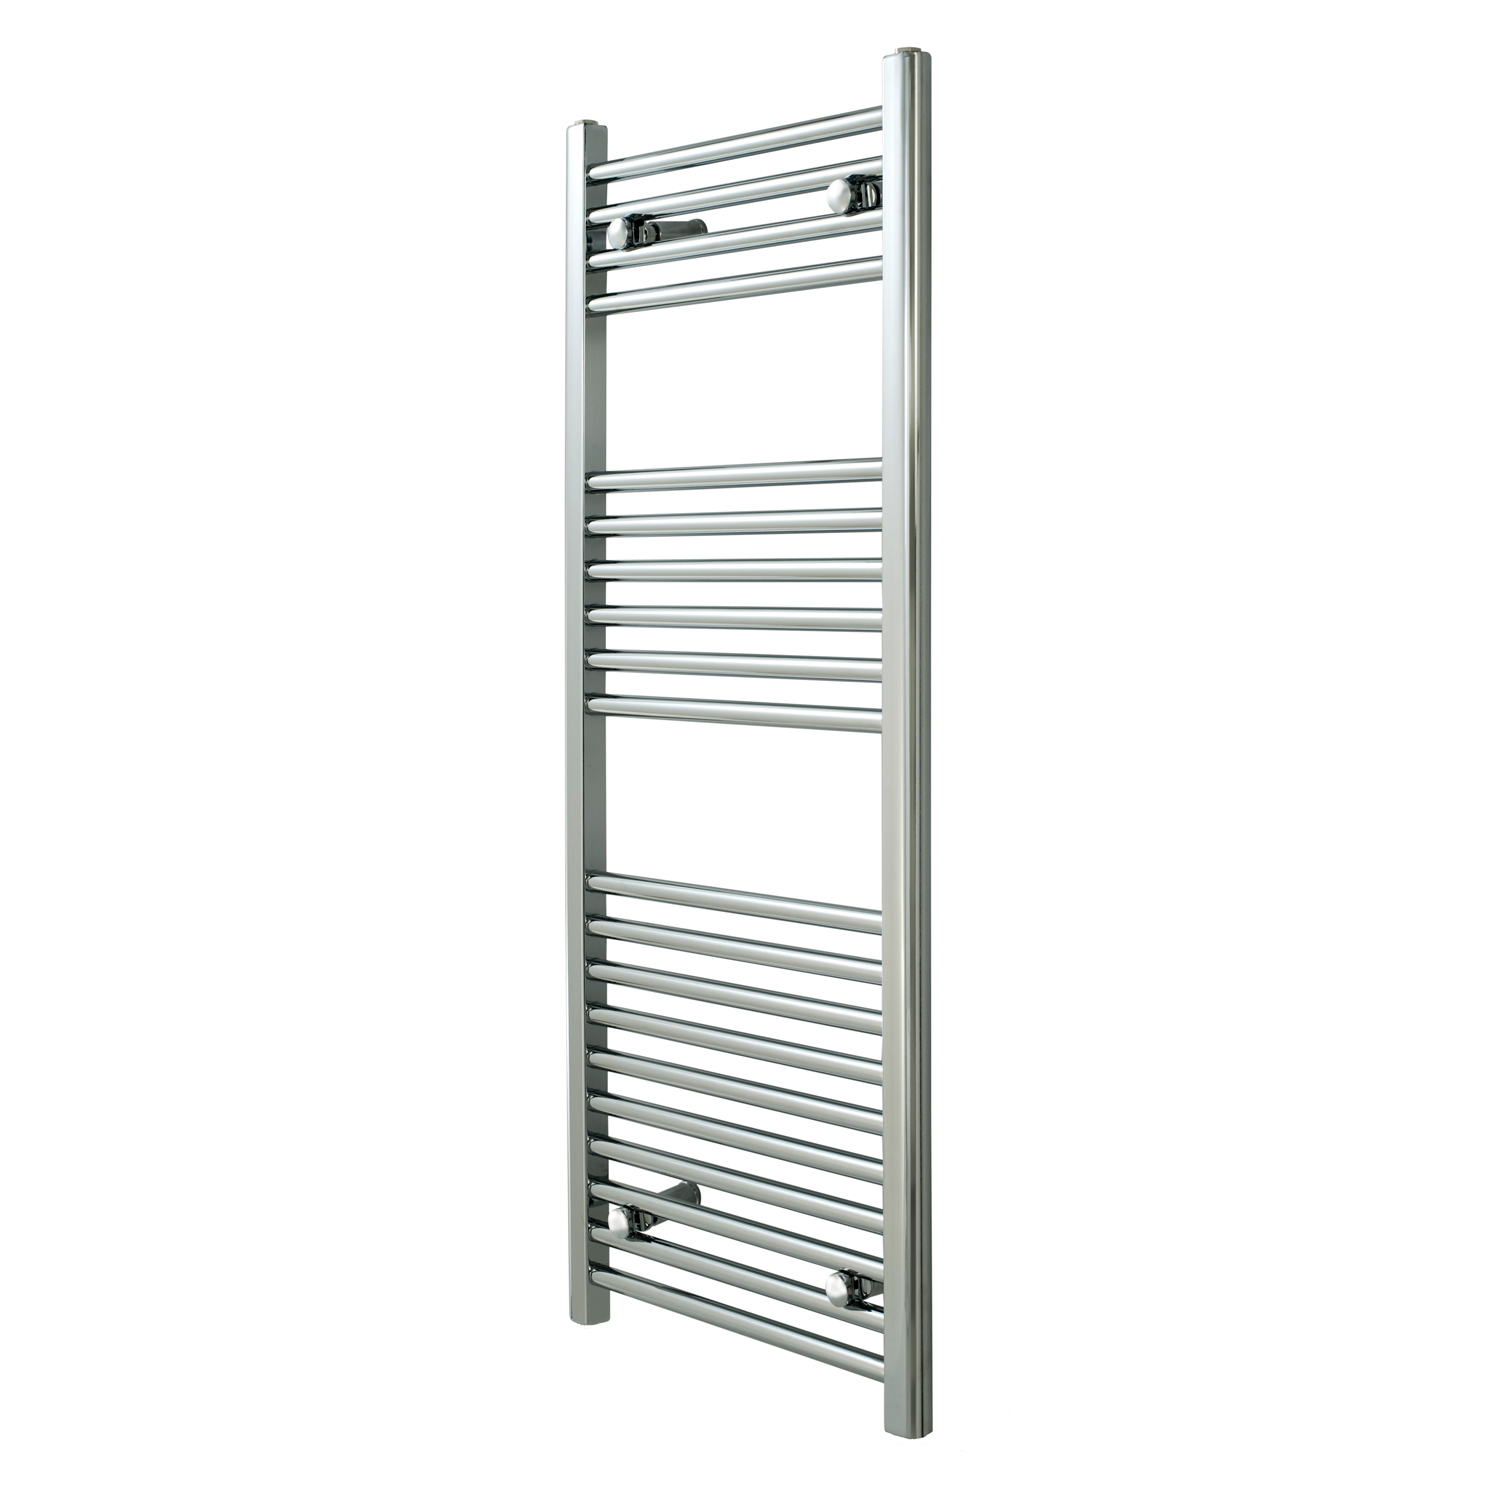 1200x500mm Chatsworth Straight Towel Radiator, Chrome